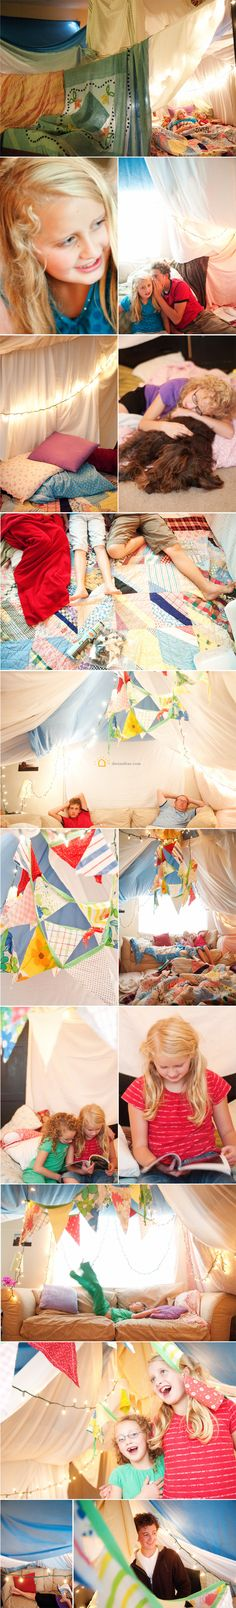 What a fun (huge!) fort!  This would be great for Family Night. :)